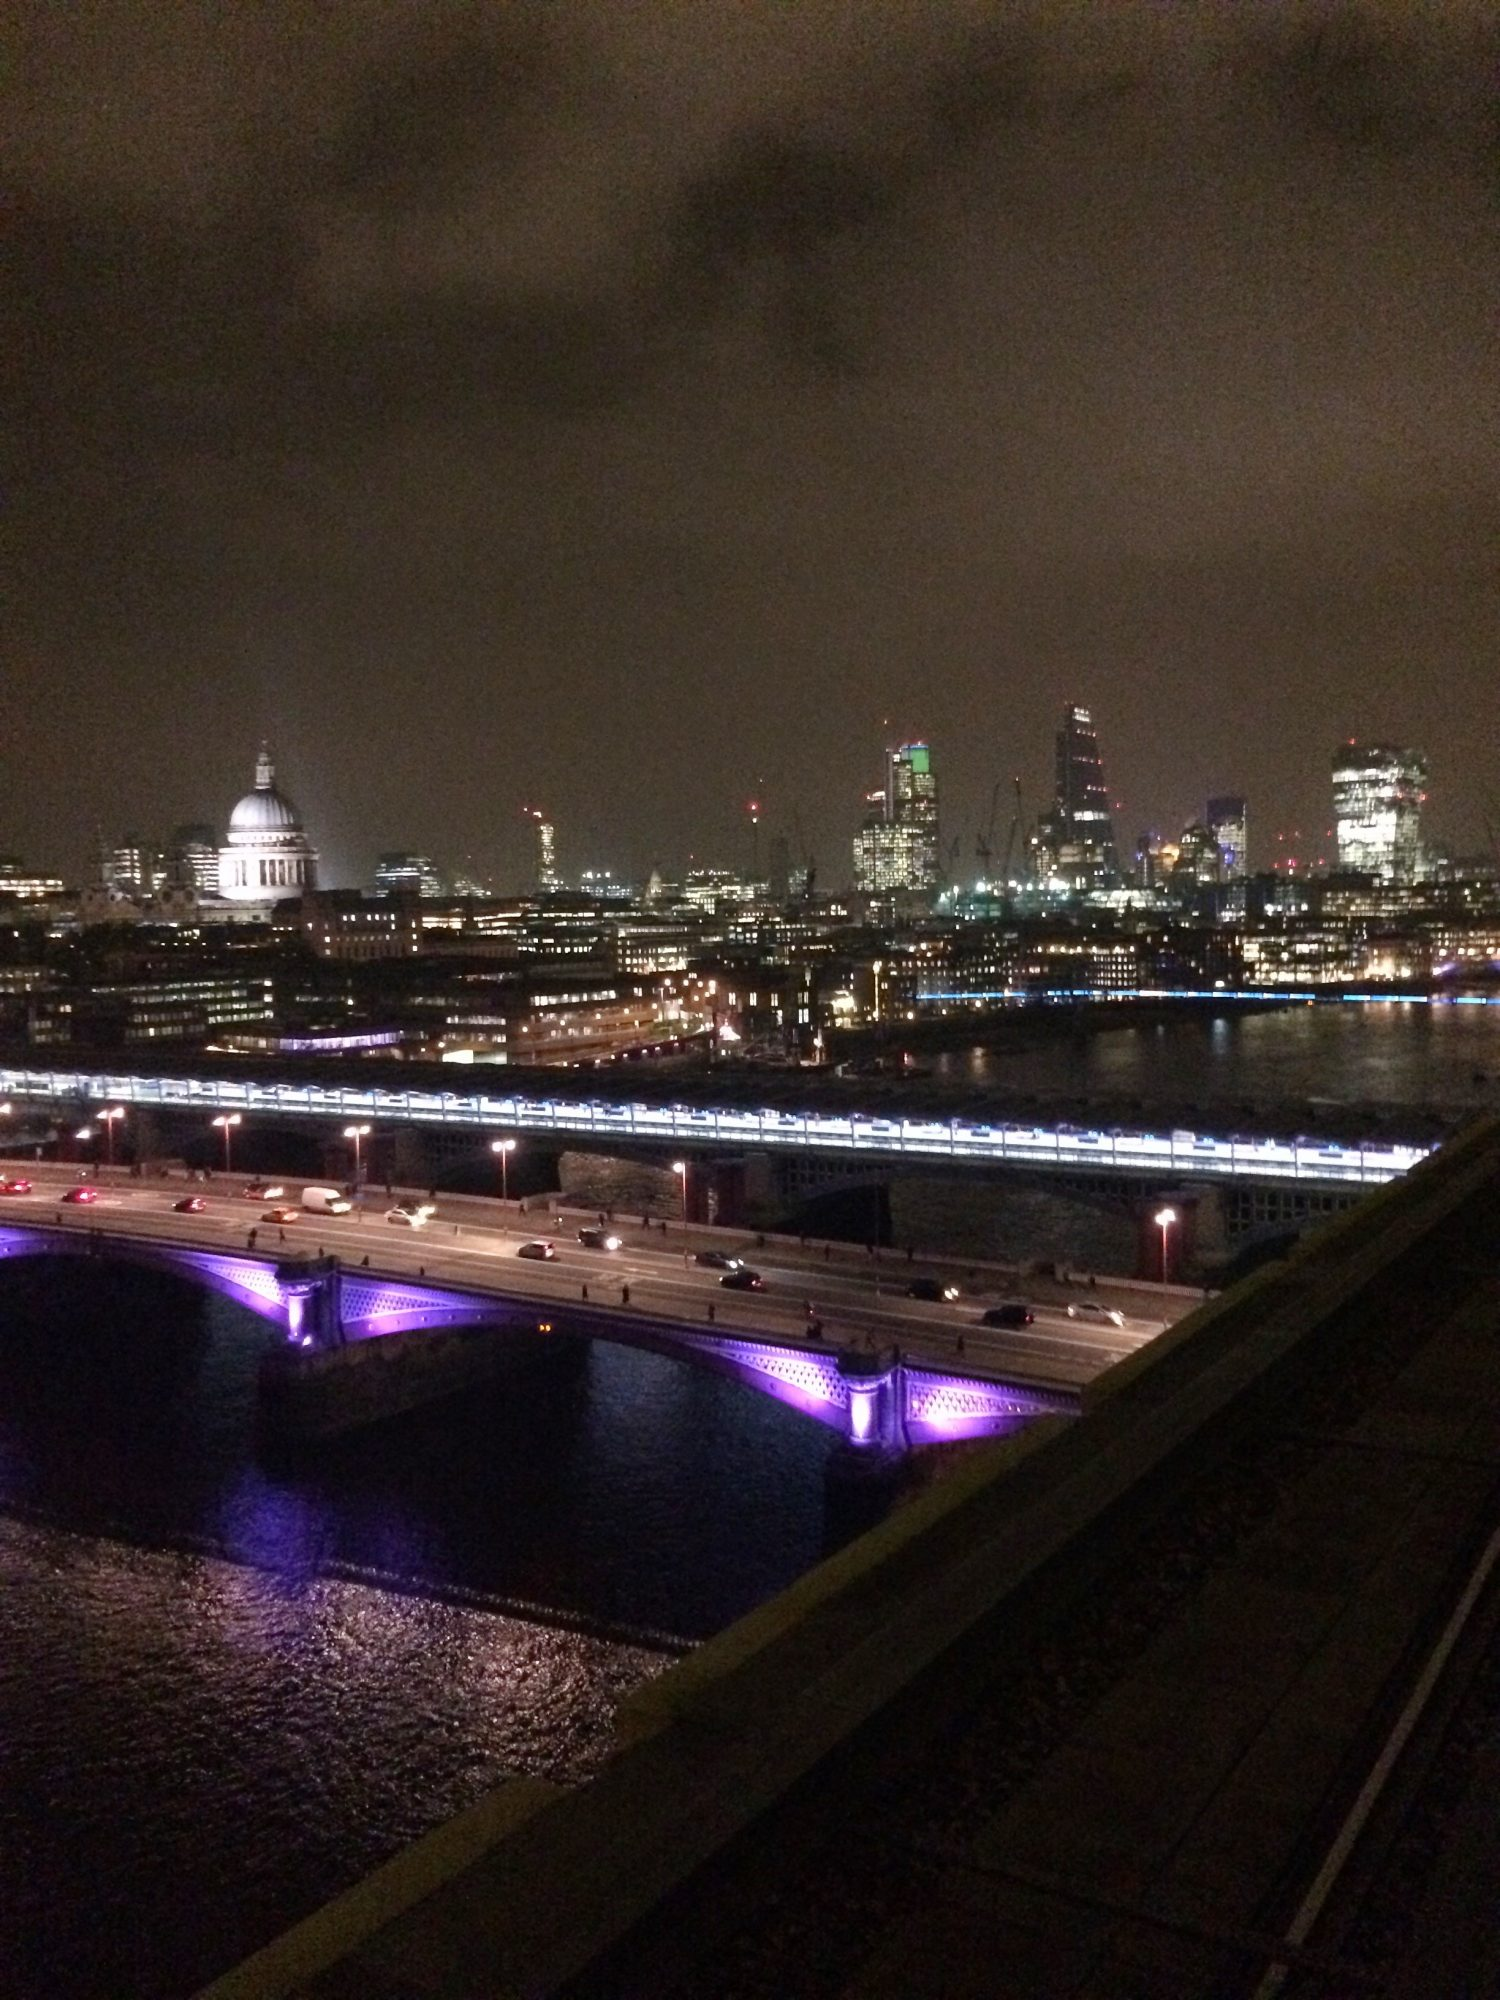 The view from the Rumpus Room in the Mondrian